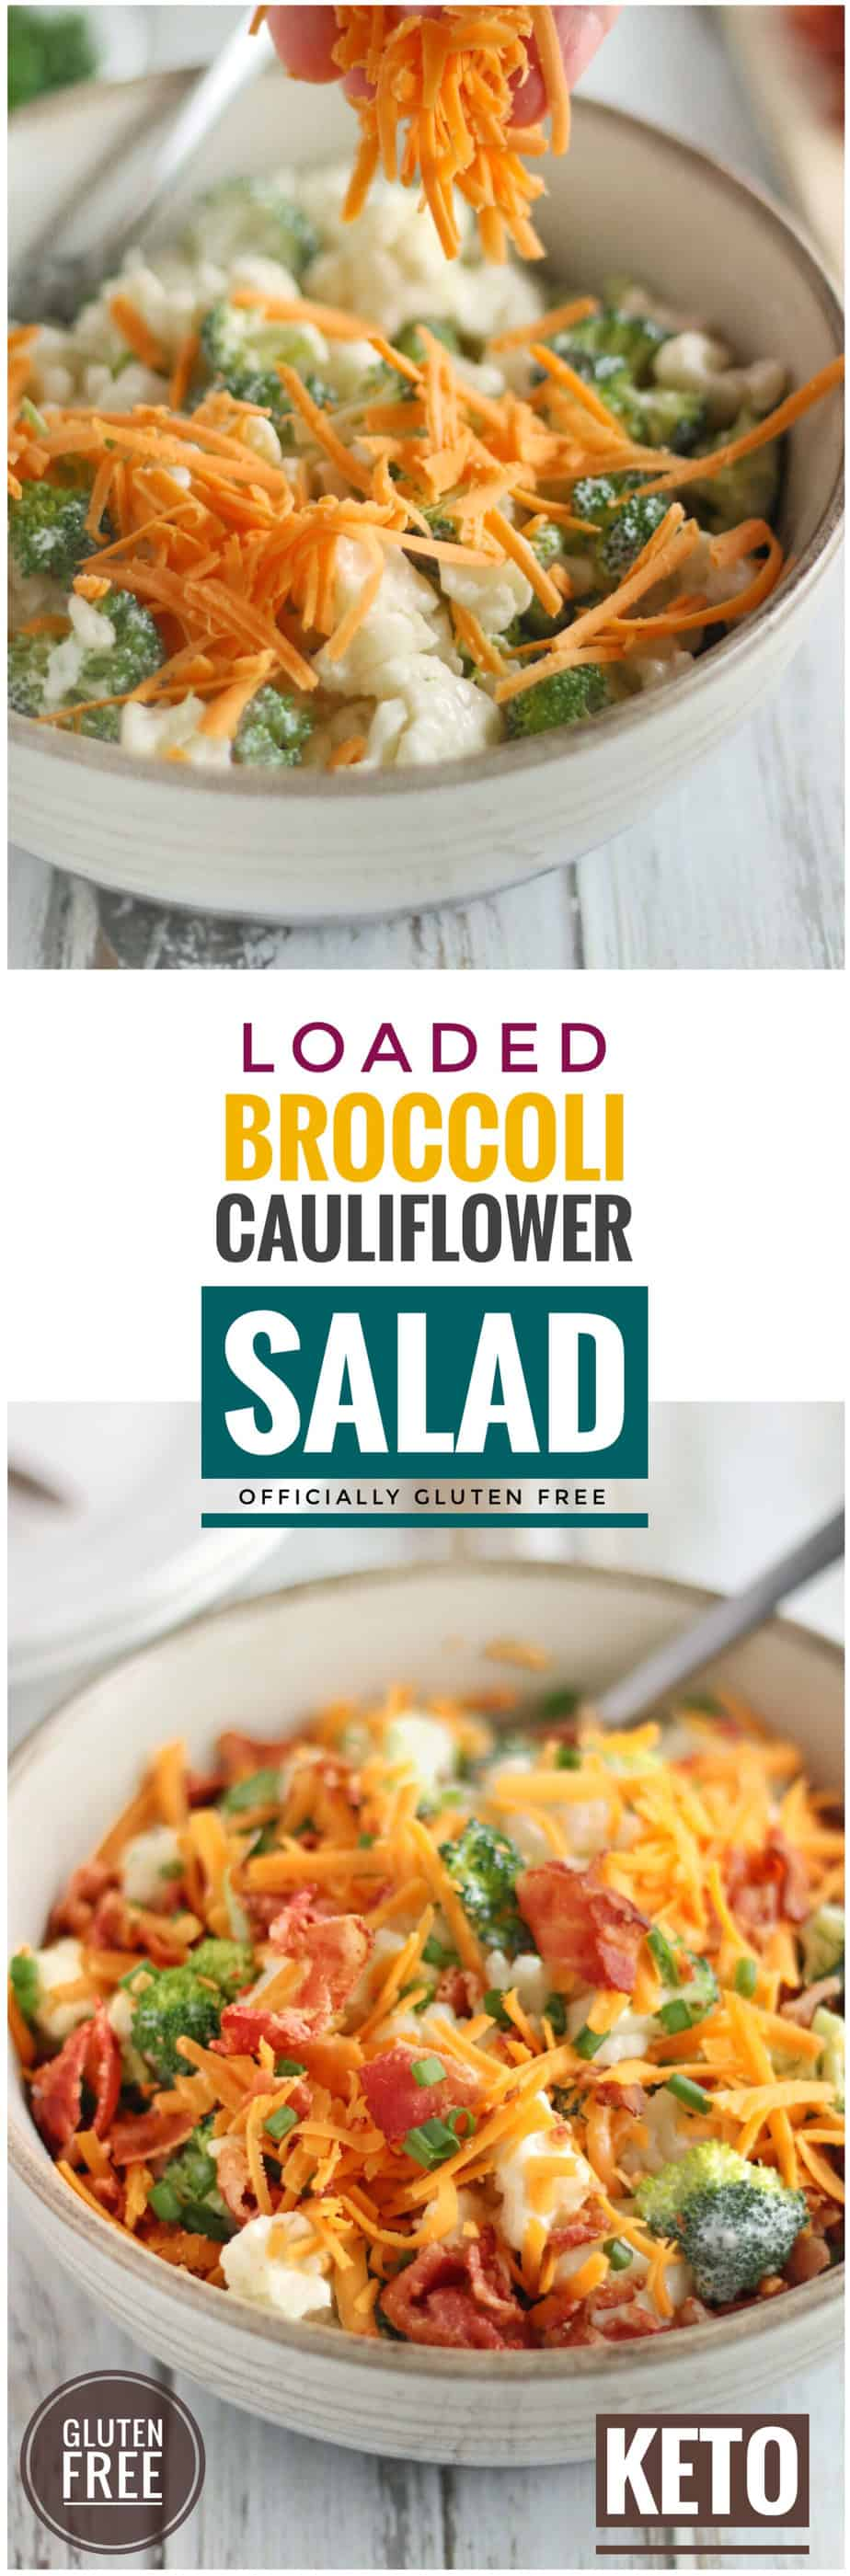 Loaded Broccoli Cauliflower Salad